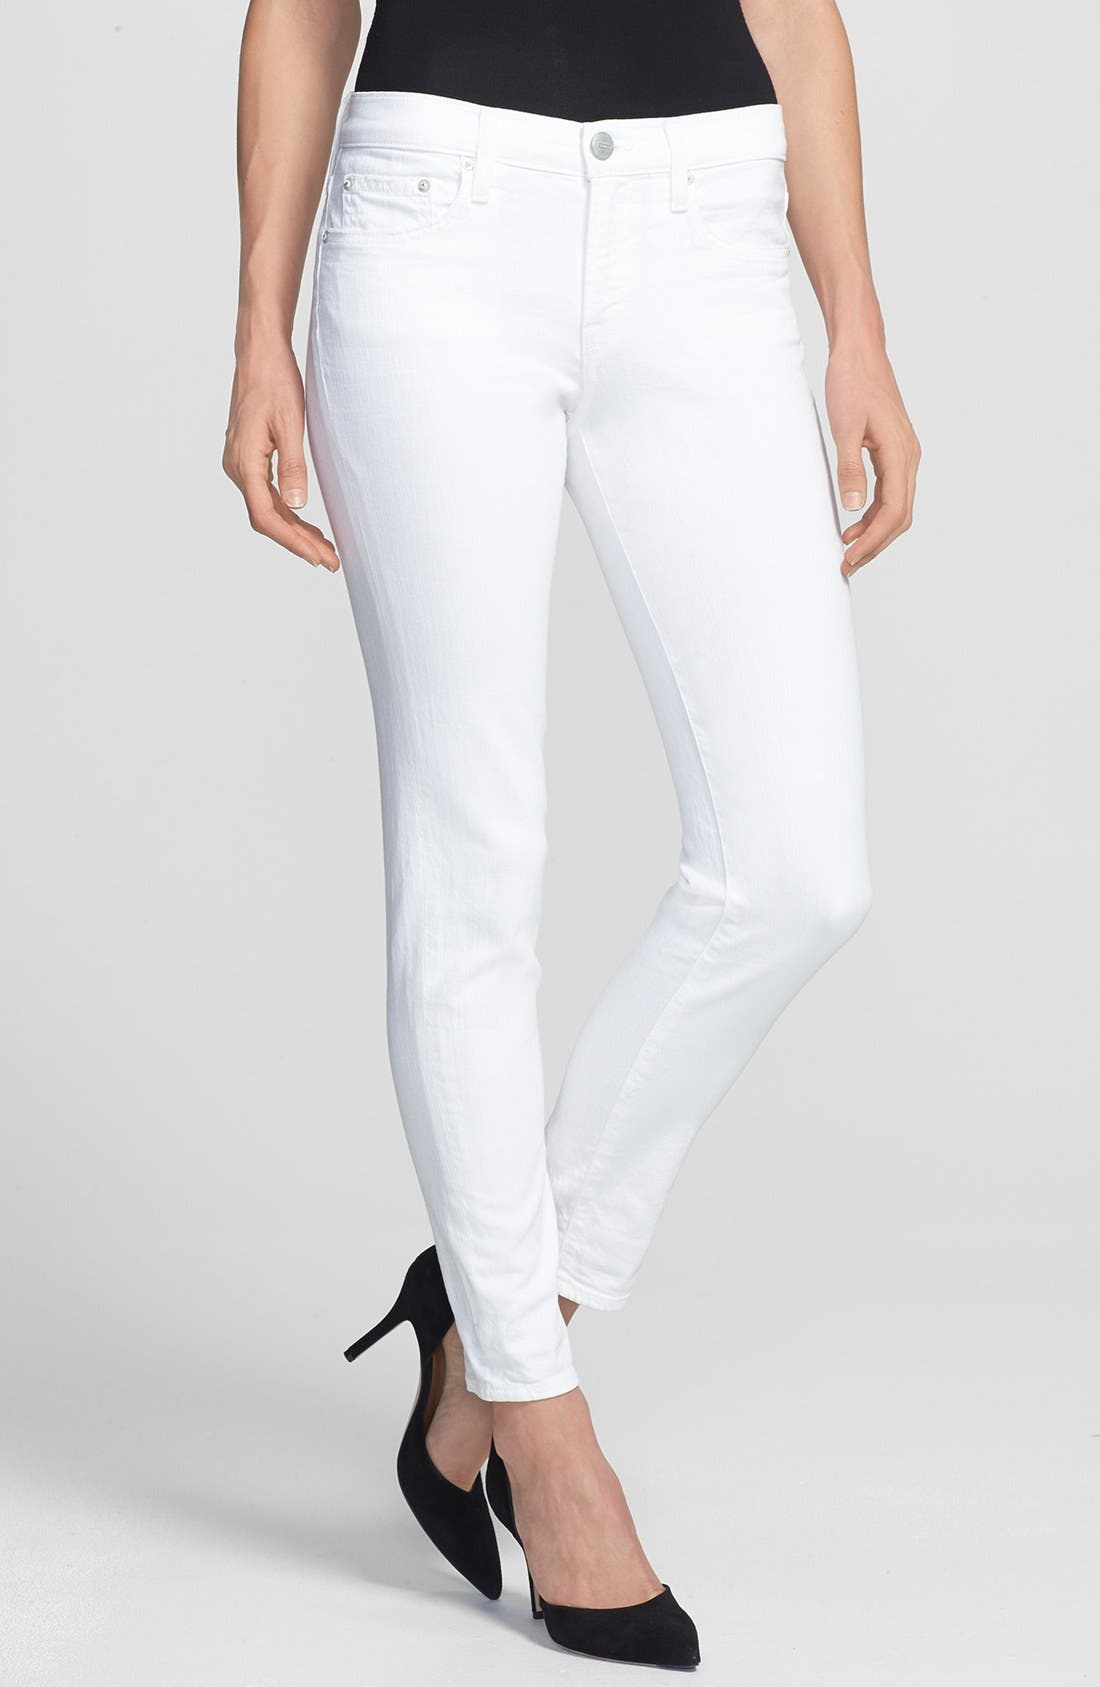 Alternate Image 1 Selected - Vince Relaxed Rolled Skinny Jeans (Soft White)